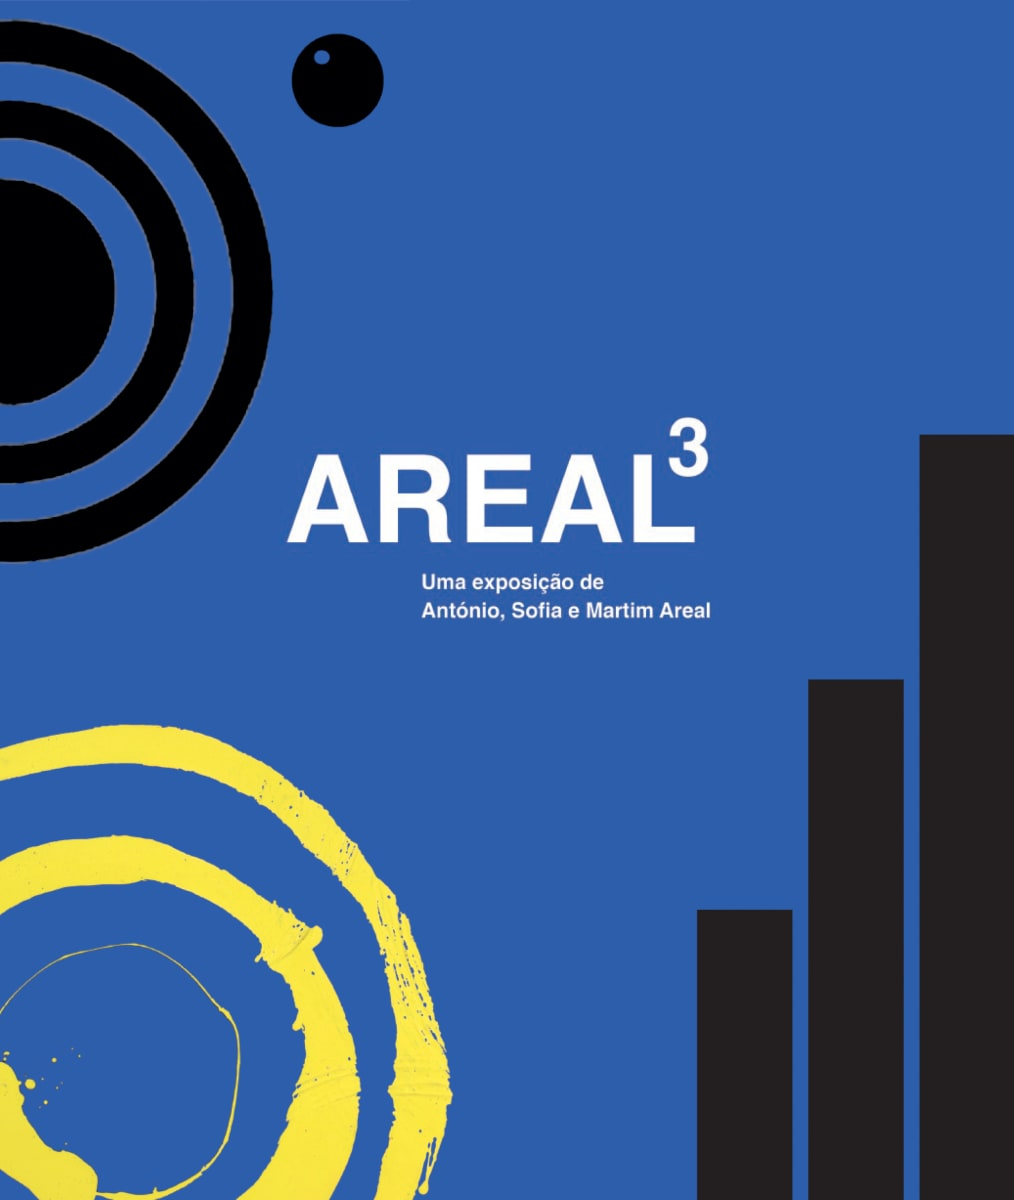 Areal3